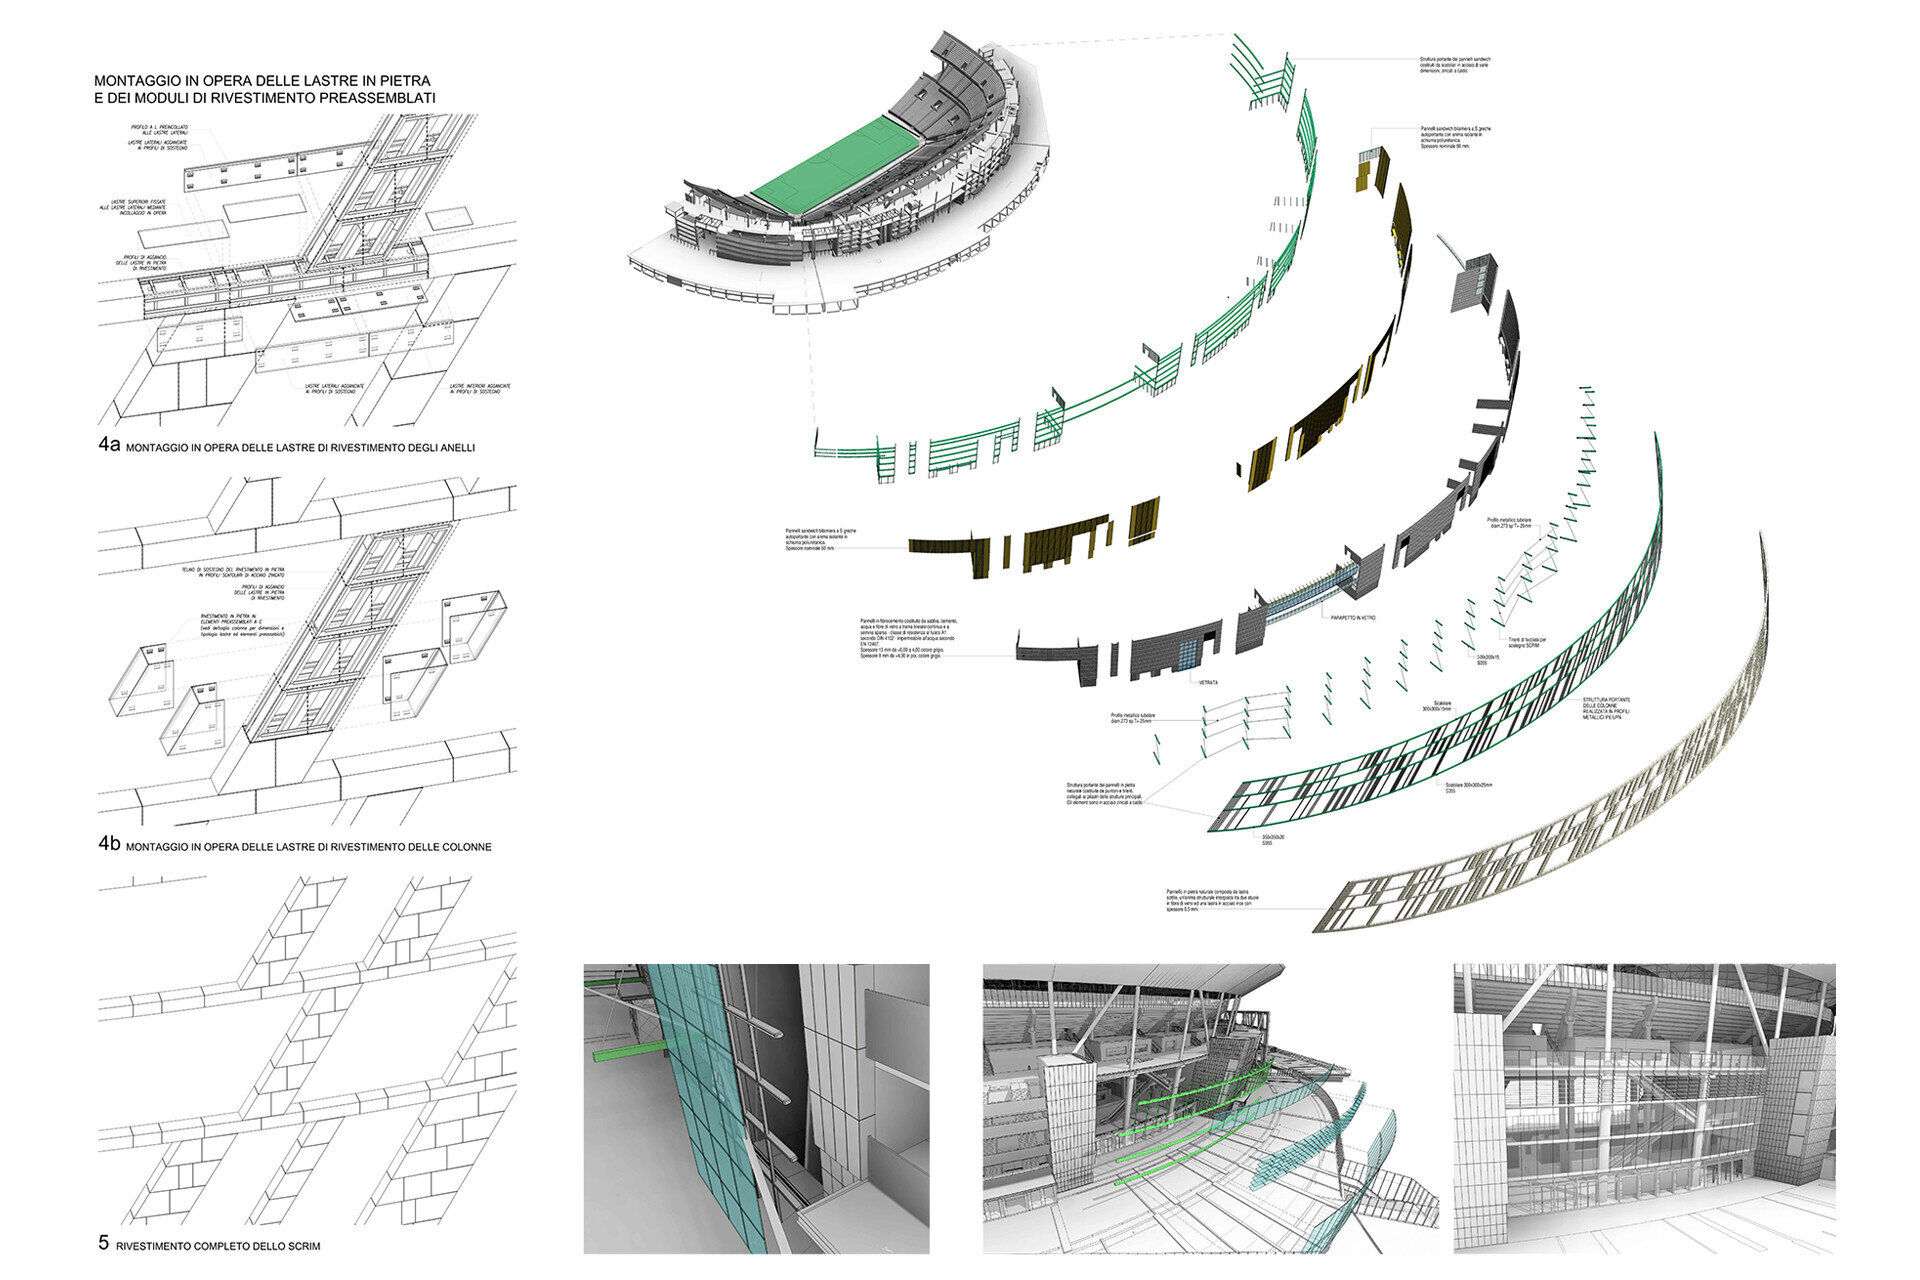 Facade design engineering by SCE Project Stadio della Roma Dettagli